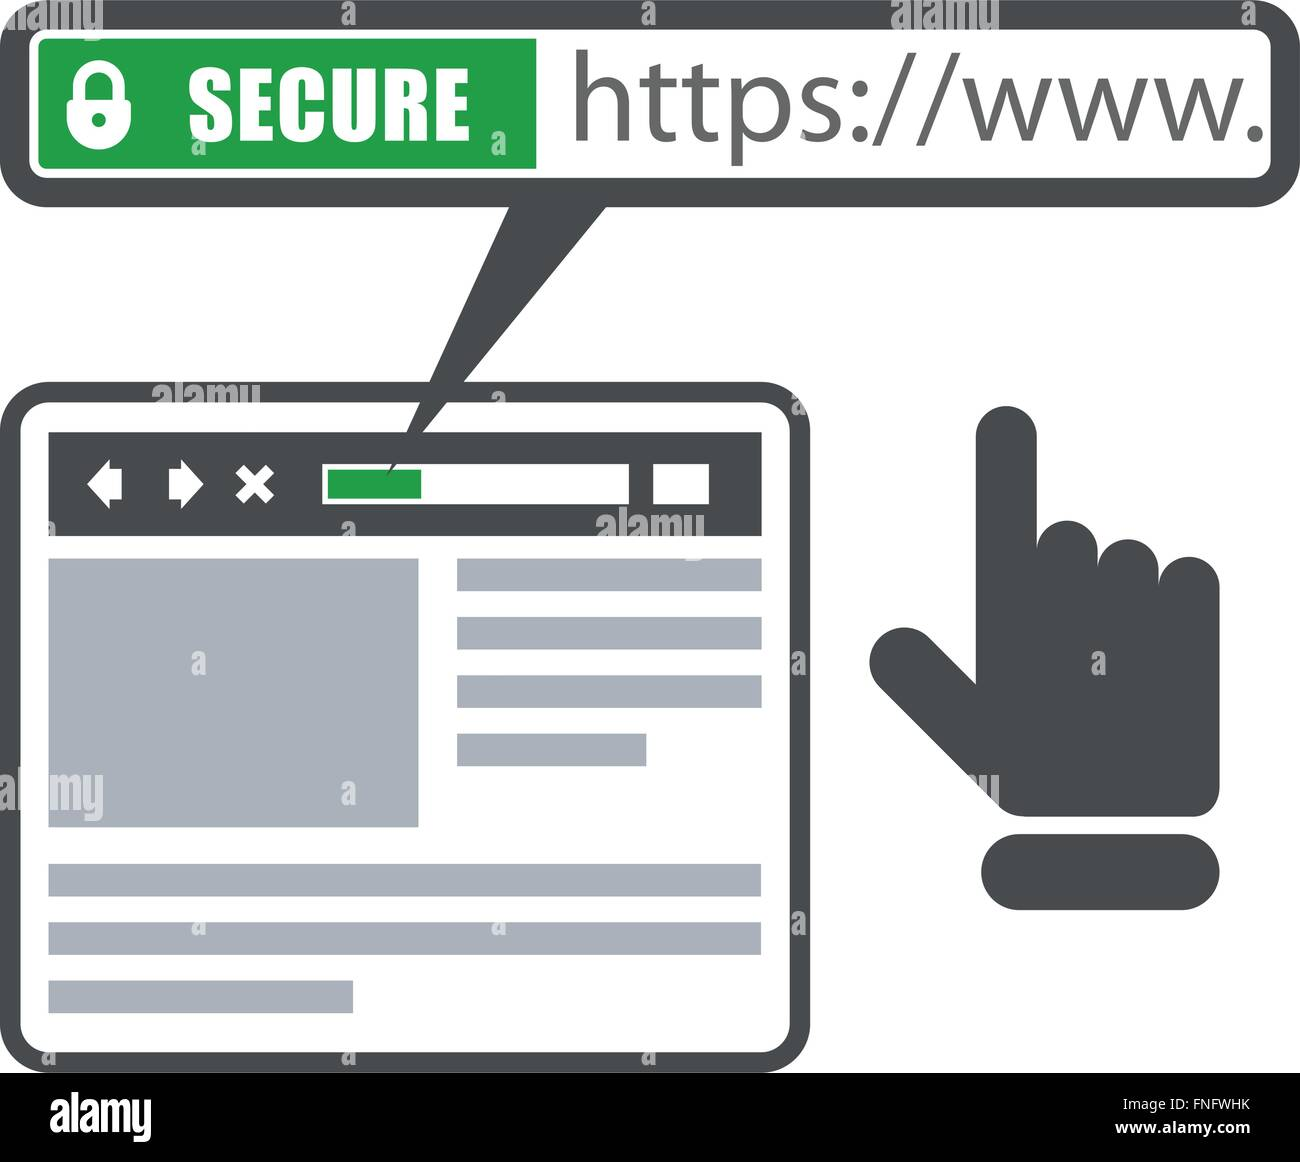 Secure online payment icon - green bar with ssl and browser - Stock Image